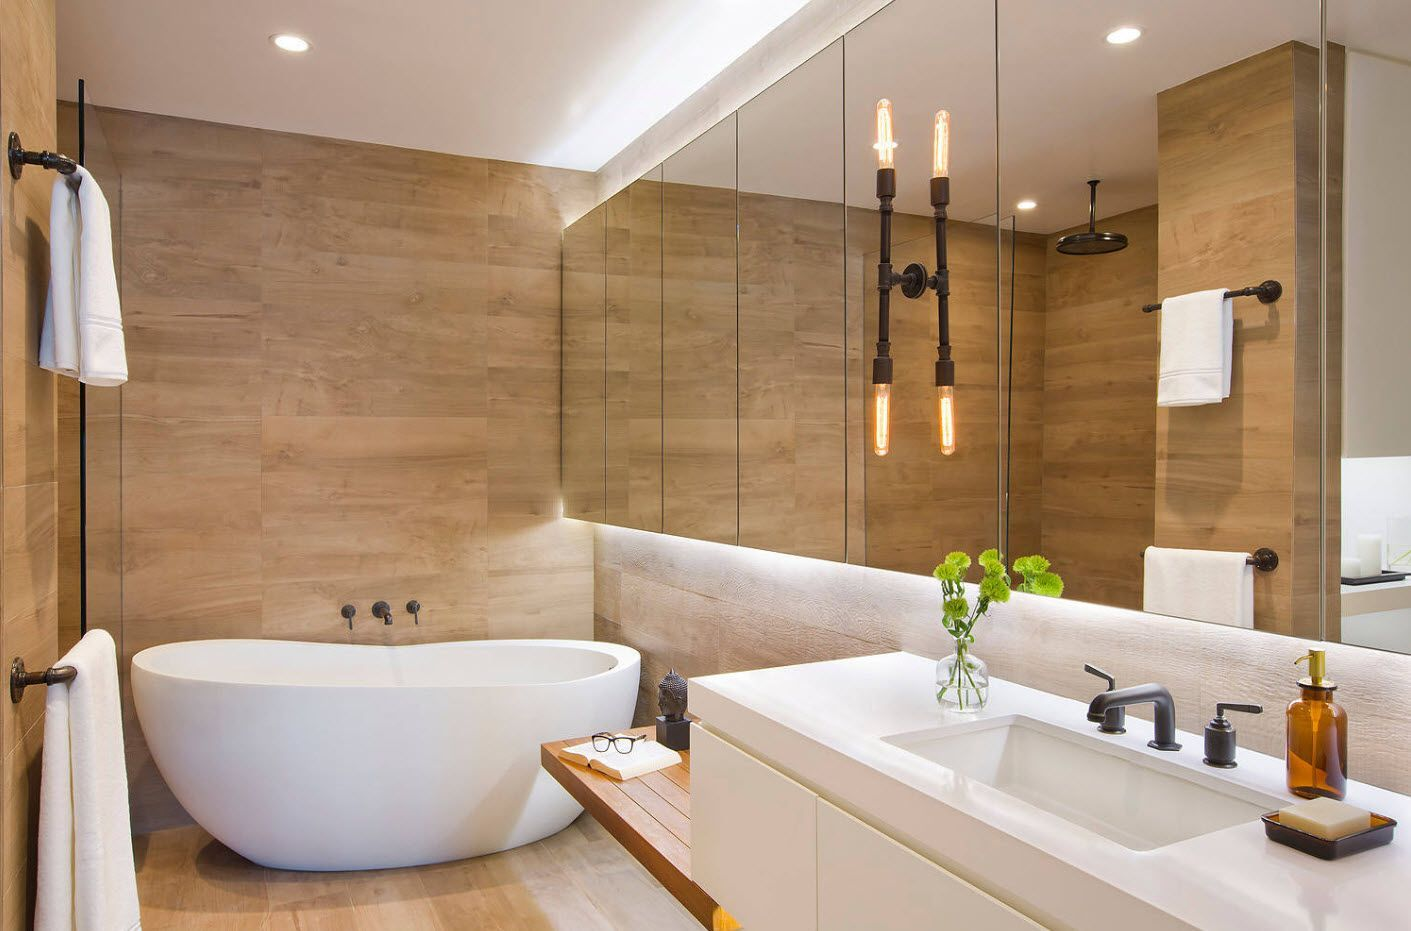 Glass surfaces and wooden accent wall with suspended lighting - cutting edge design idea for your bathroom